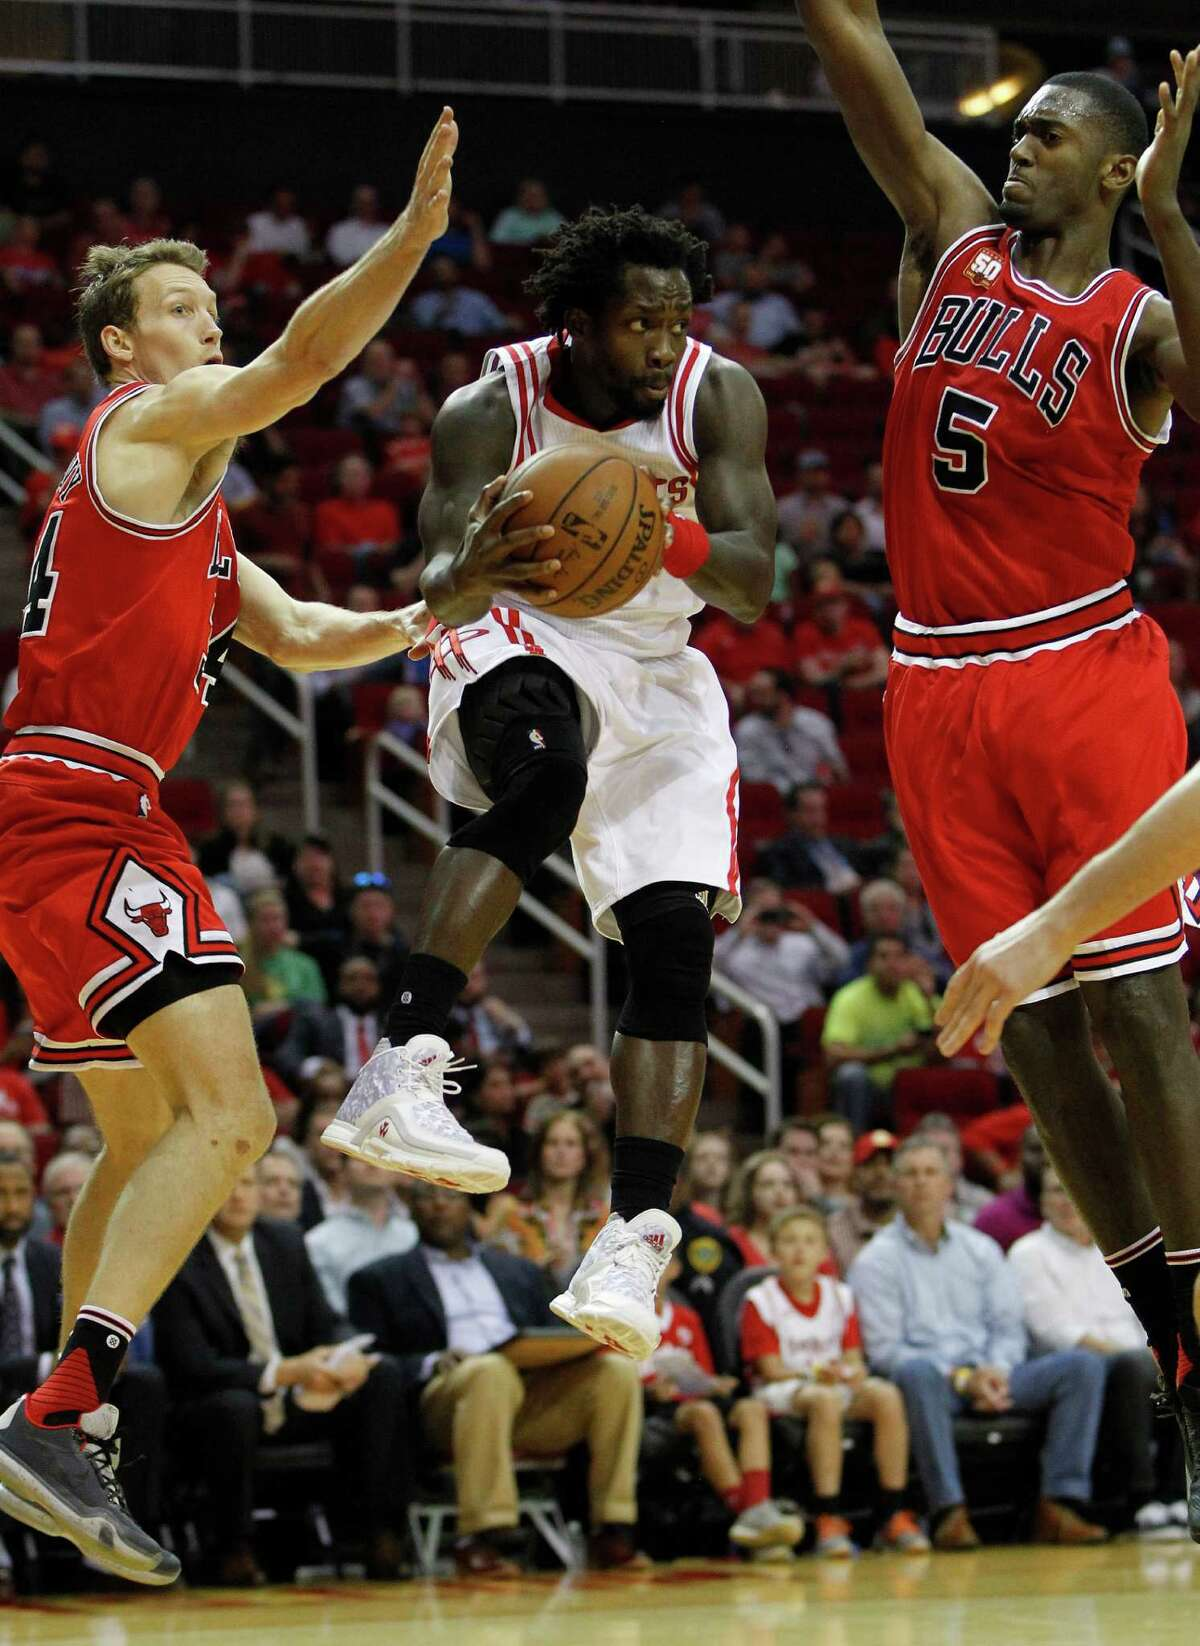 Houston Rockets guard Patrick Beverley (2) tries to pass off the ball between Chicago Bulls guard Mike Dunleavy (34) and orward Bobby Portis (5) during the first half of an NBA basketball game at Toyota Center, Thursday, March 31, 2016, in Houston.